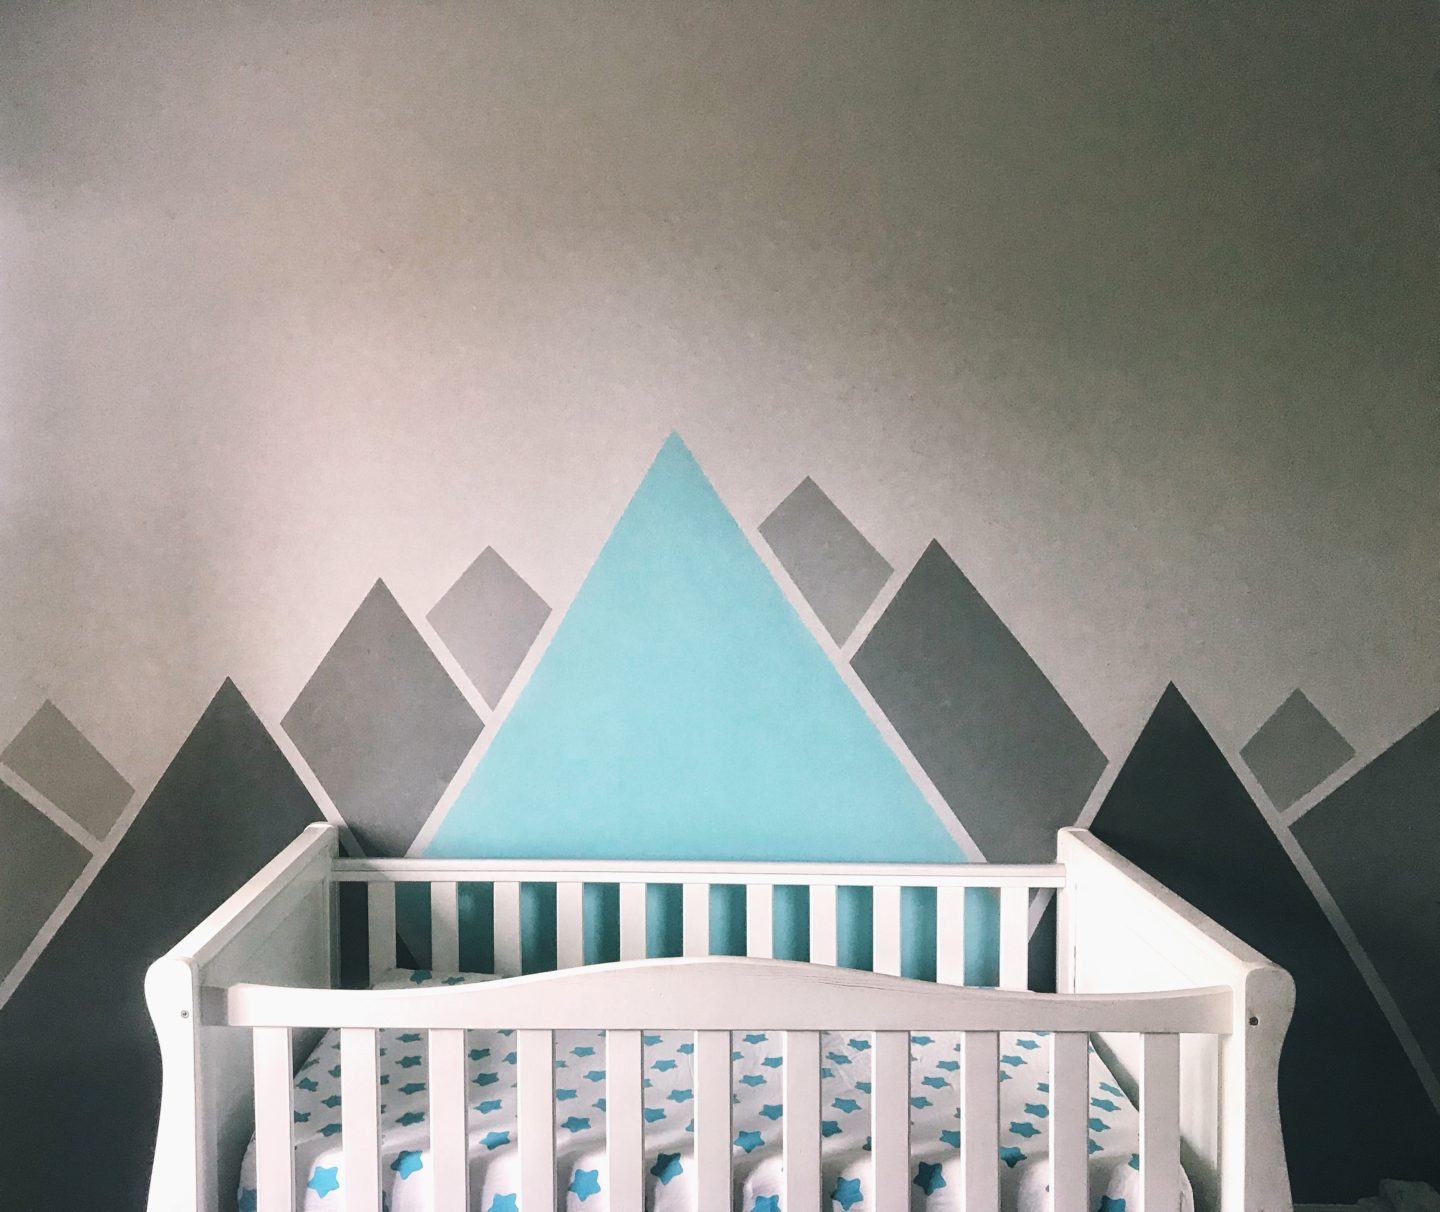 Felix's Bedroom - grey and aqua mountains painted on the wall behind a white cot